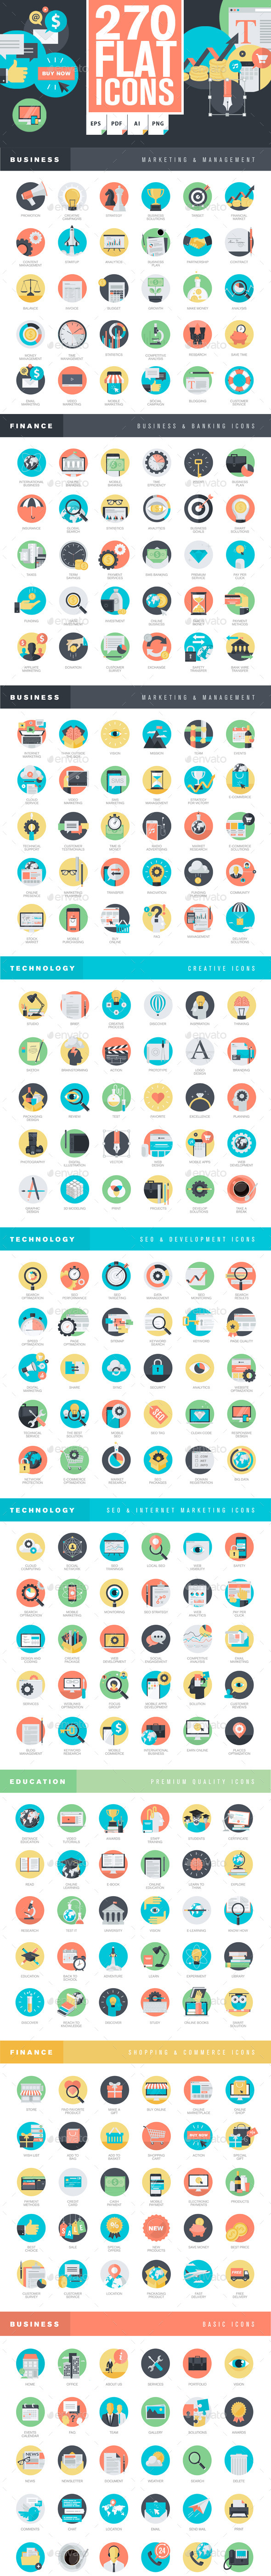 GraphicRiver Set of Flat Design Icons 11203539